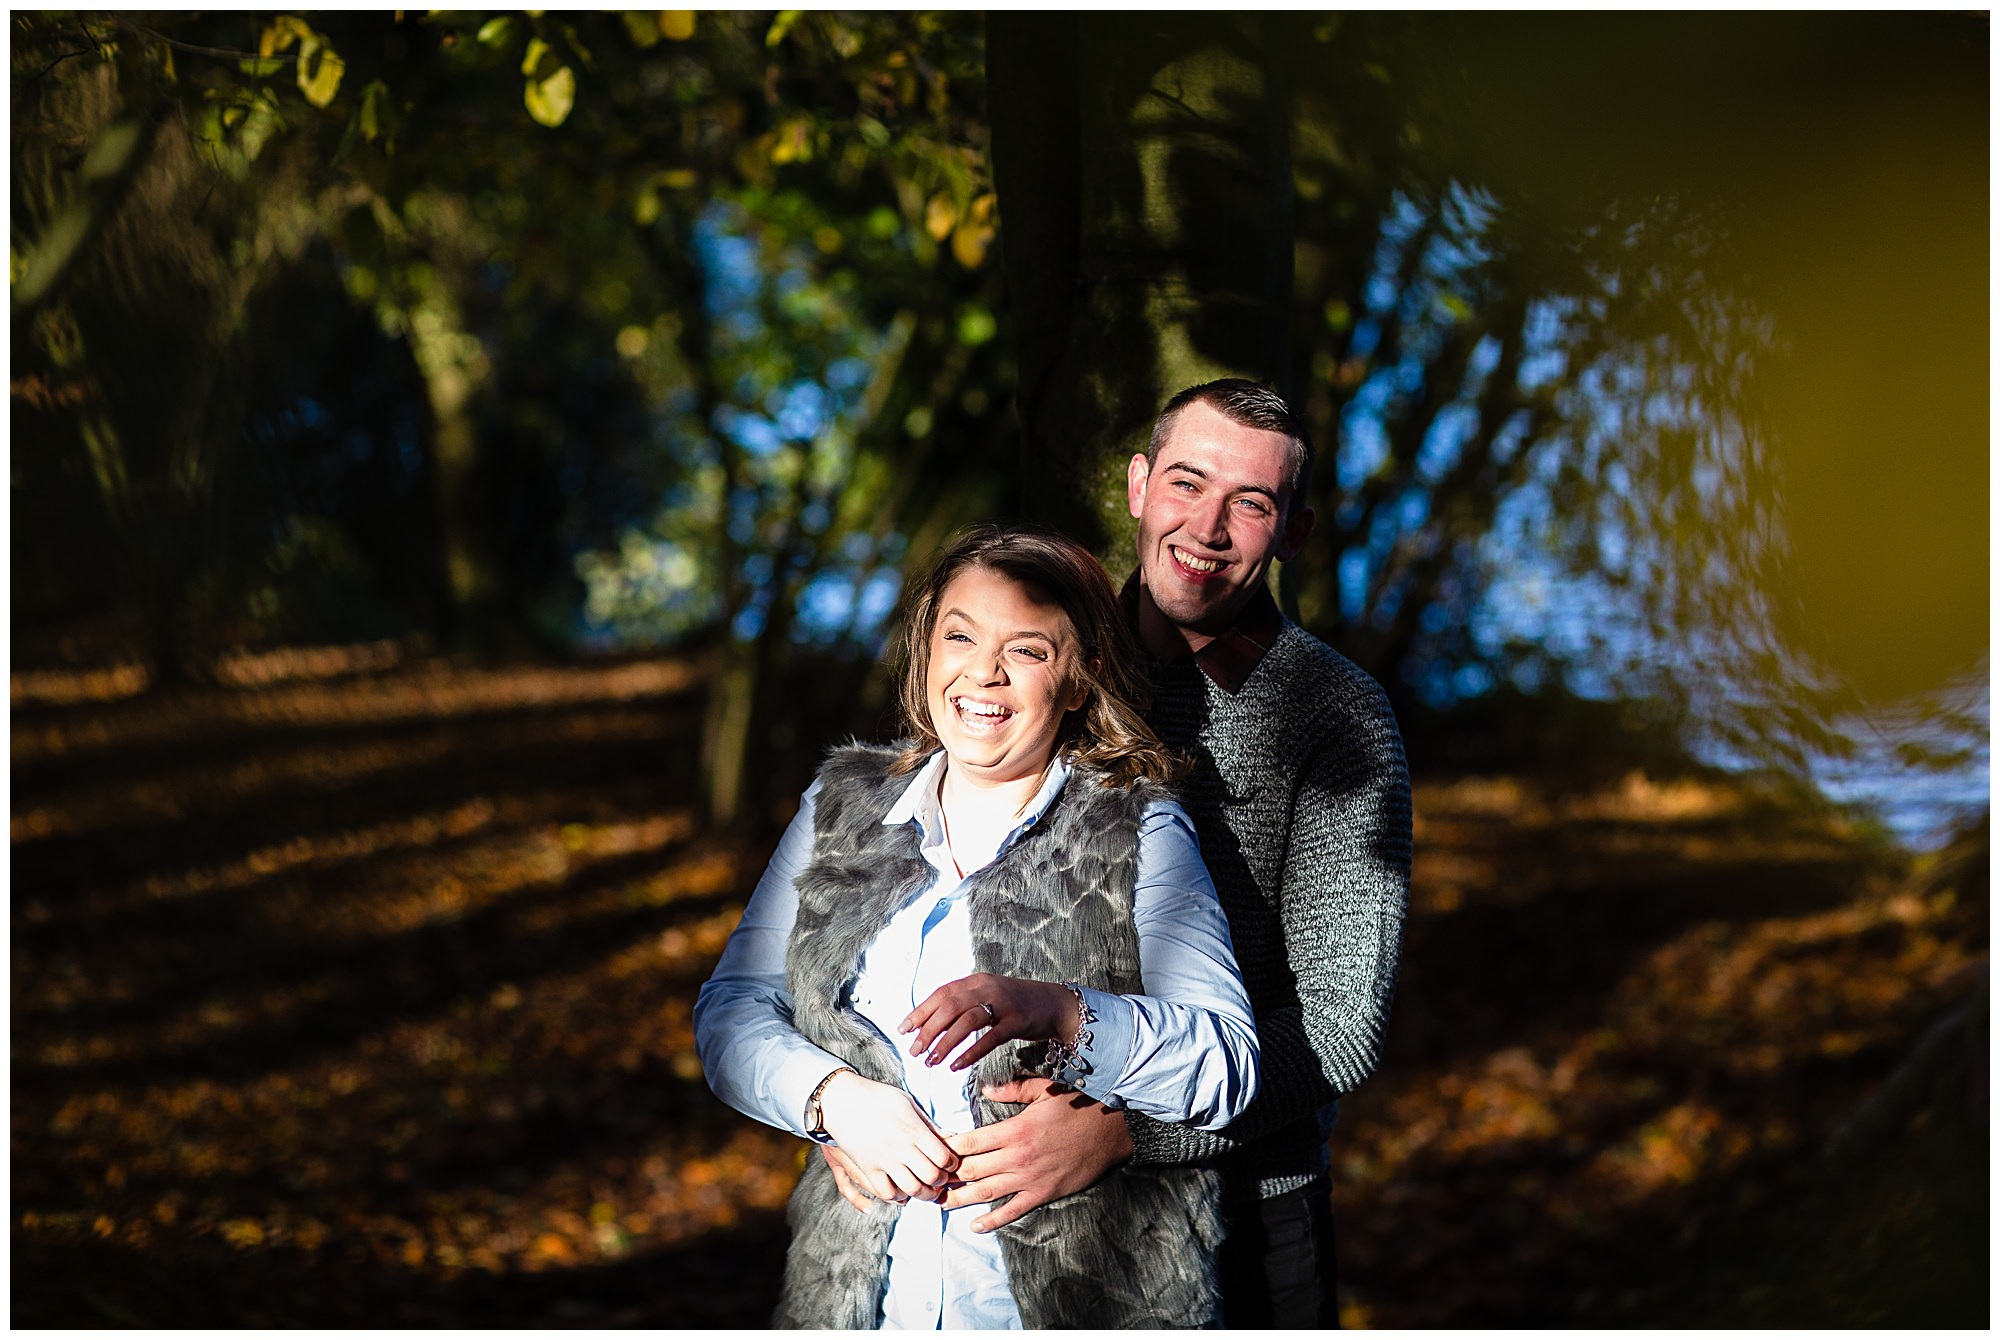 coupleat Colemere laughing amongst autumn leaves - Shropshire Engagement Photographer